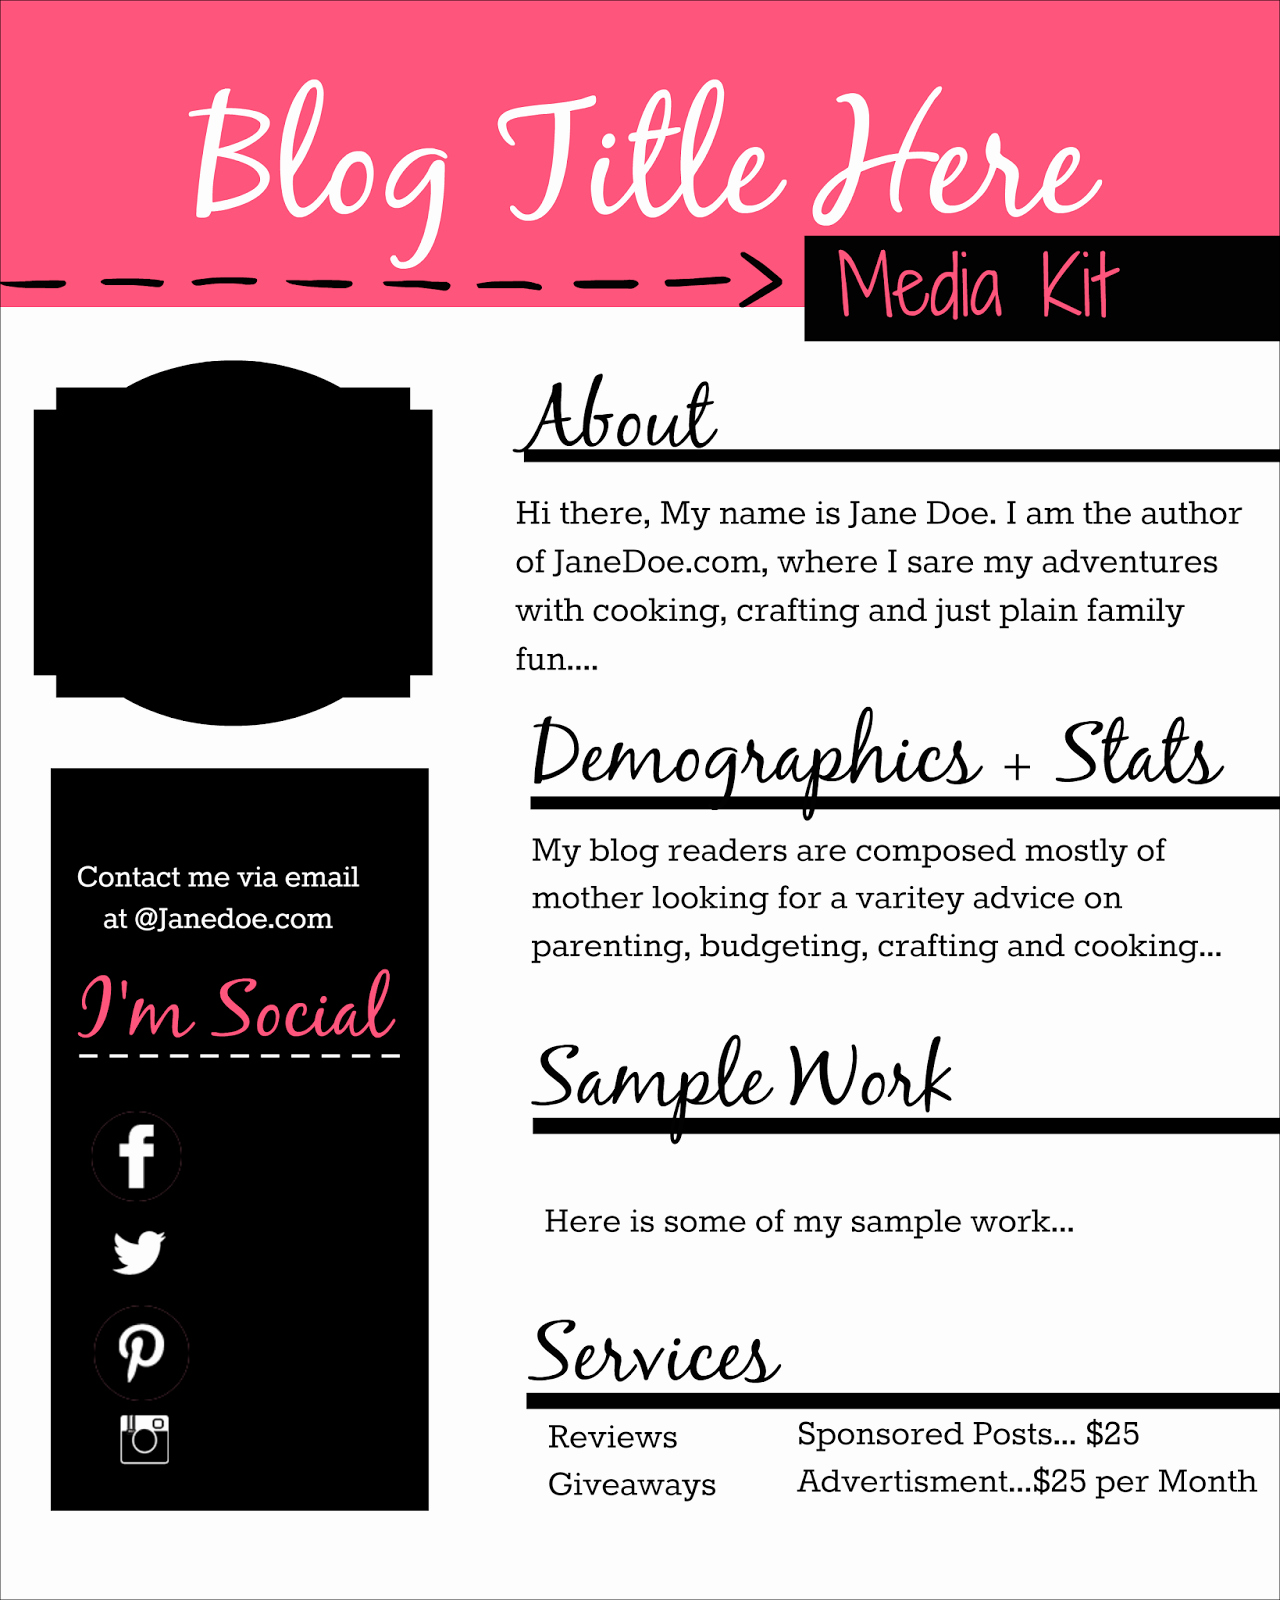 Free Media Kit Template Best Of How to Design A Free Media Kit for Your Blog Premade